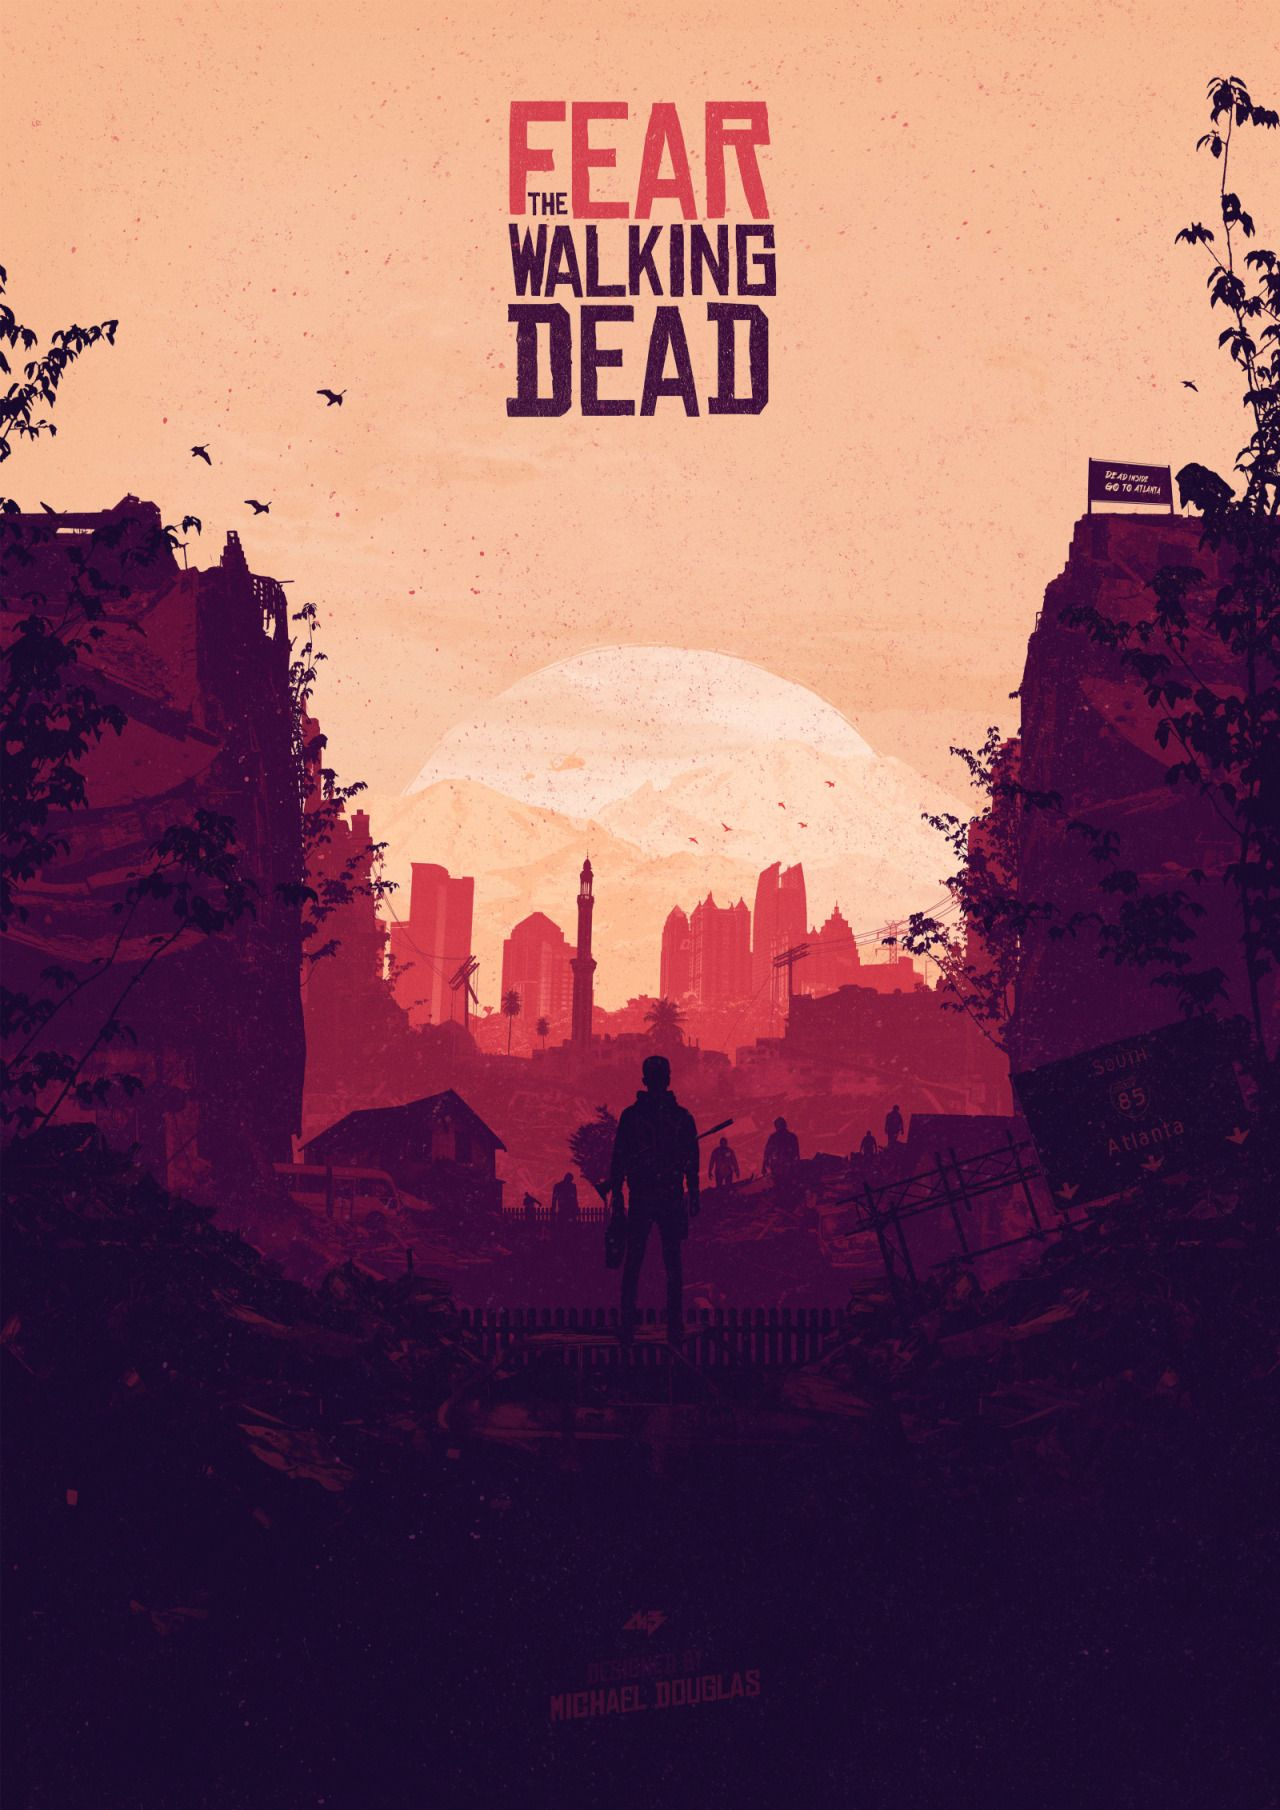 Pixalry The Walking Dead Poster Fear The Walking Dead Fear The Walking